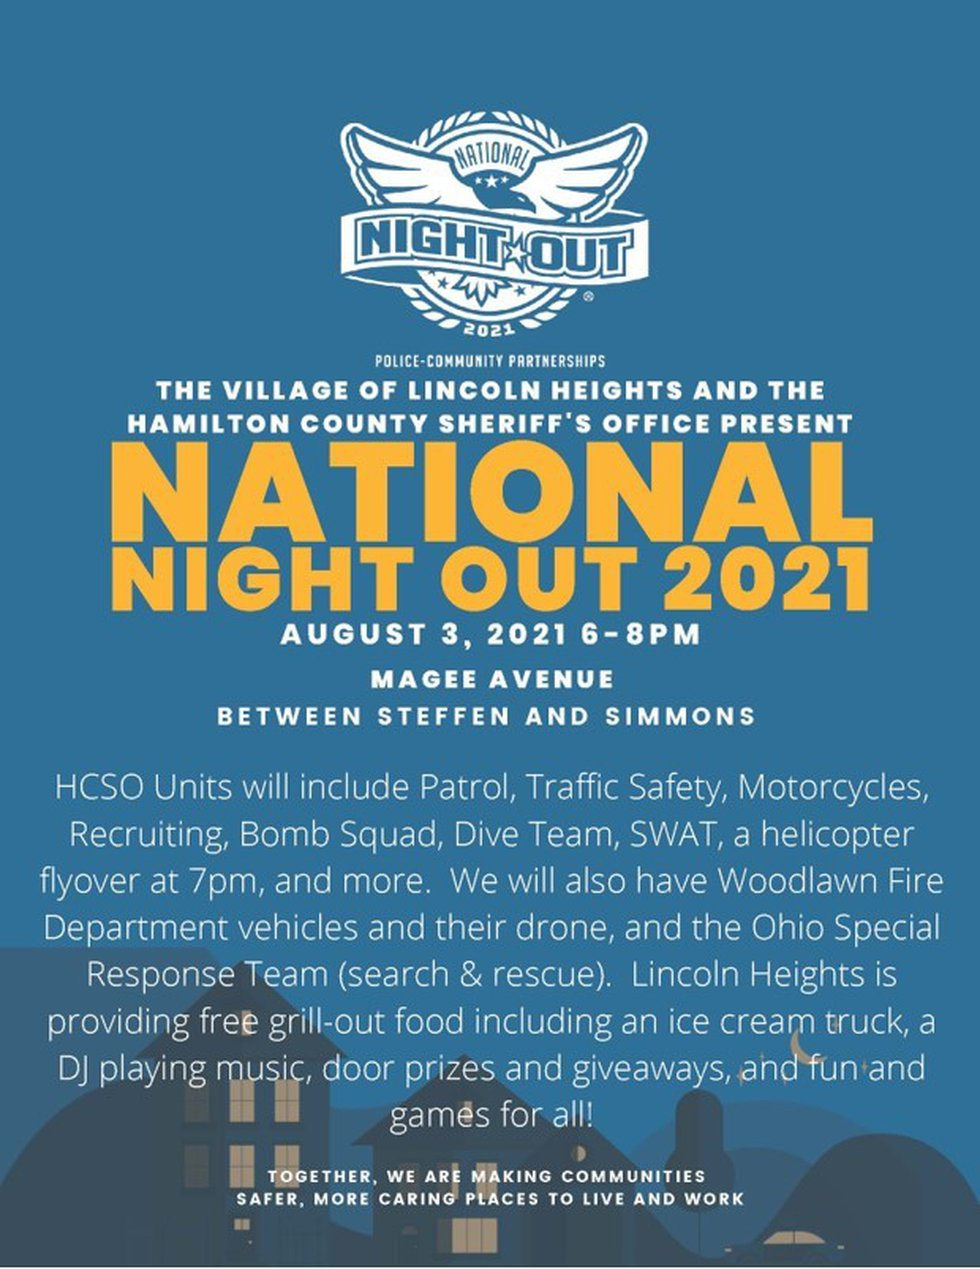 National Night Out in Lincoln Heights.